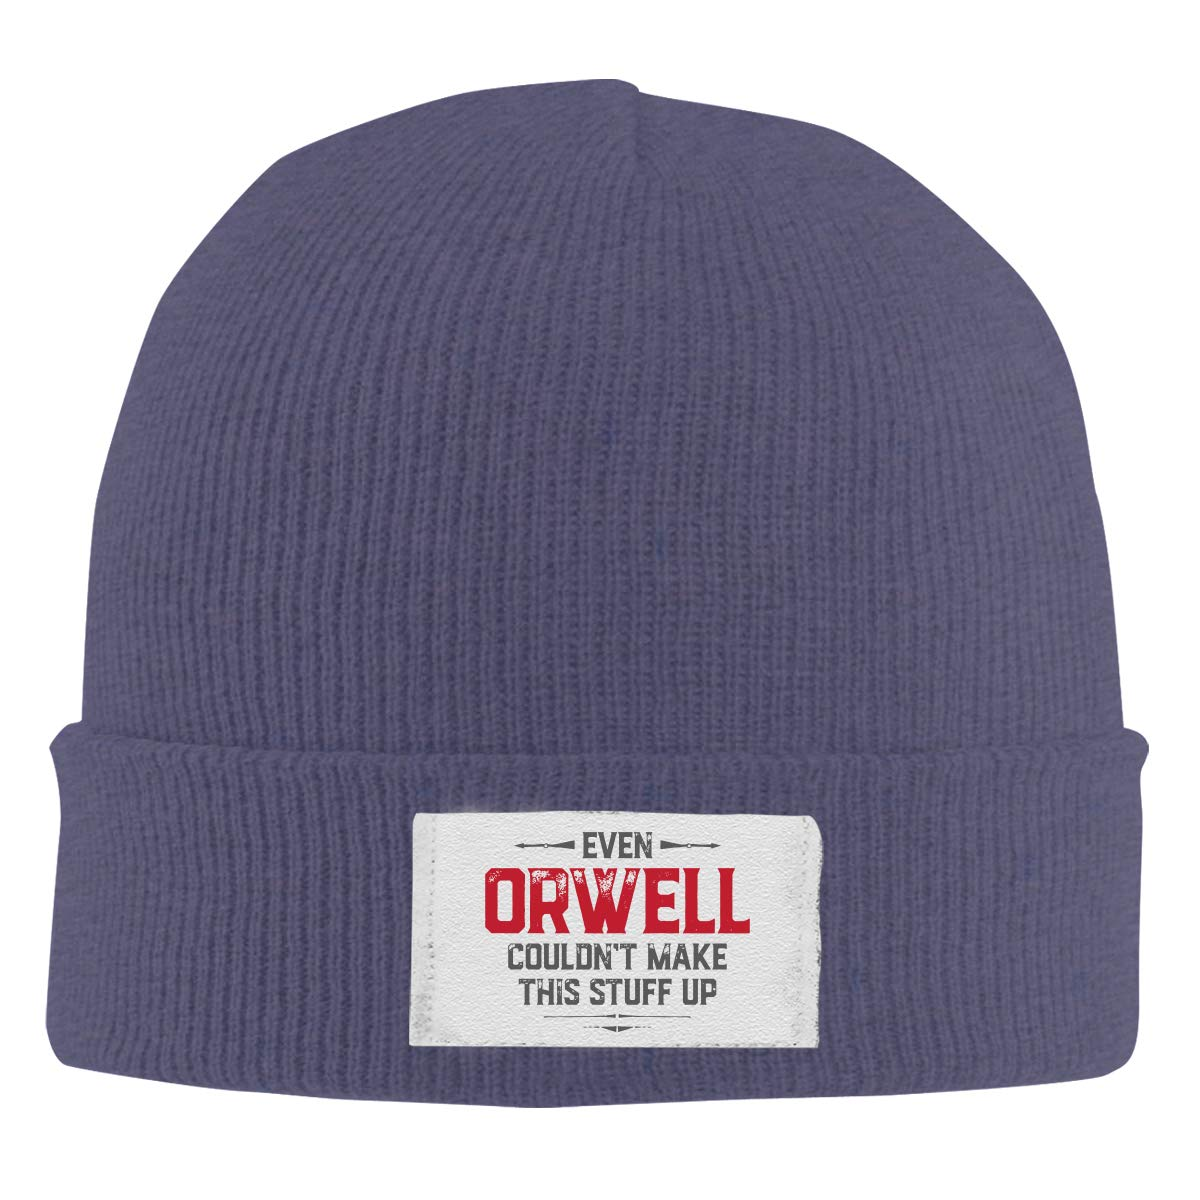 Skull Caps Even Orwell Couldnt Make This Stuff Up Winter Warm Knit Hats Stretchy Cuff Beanie Hat Black